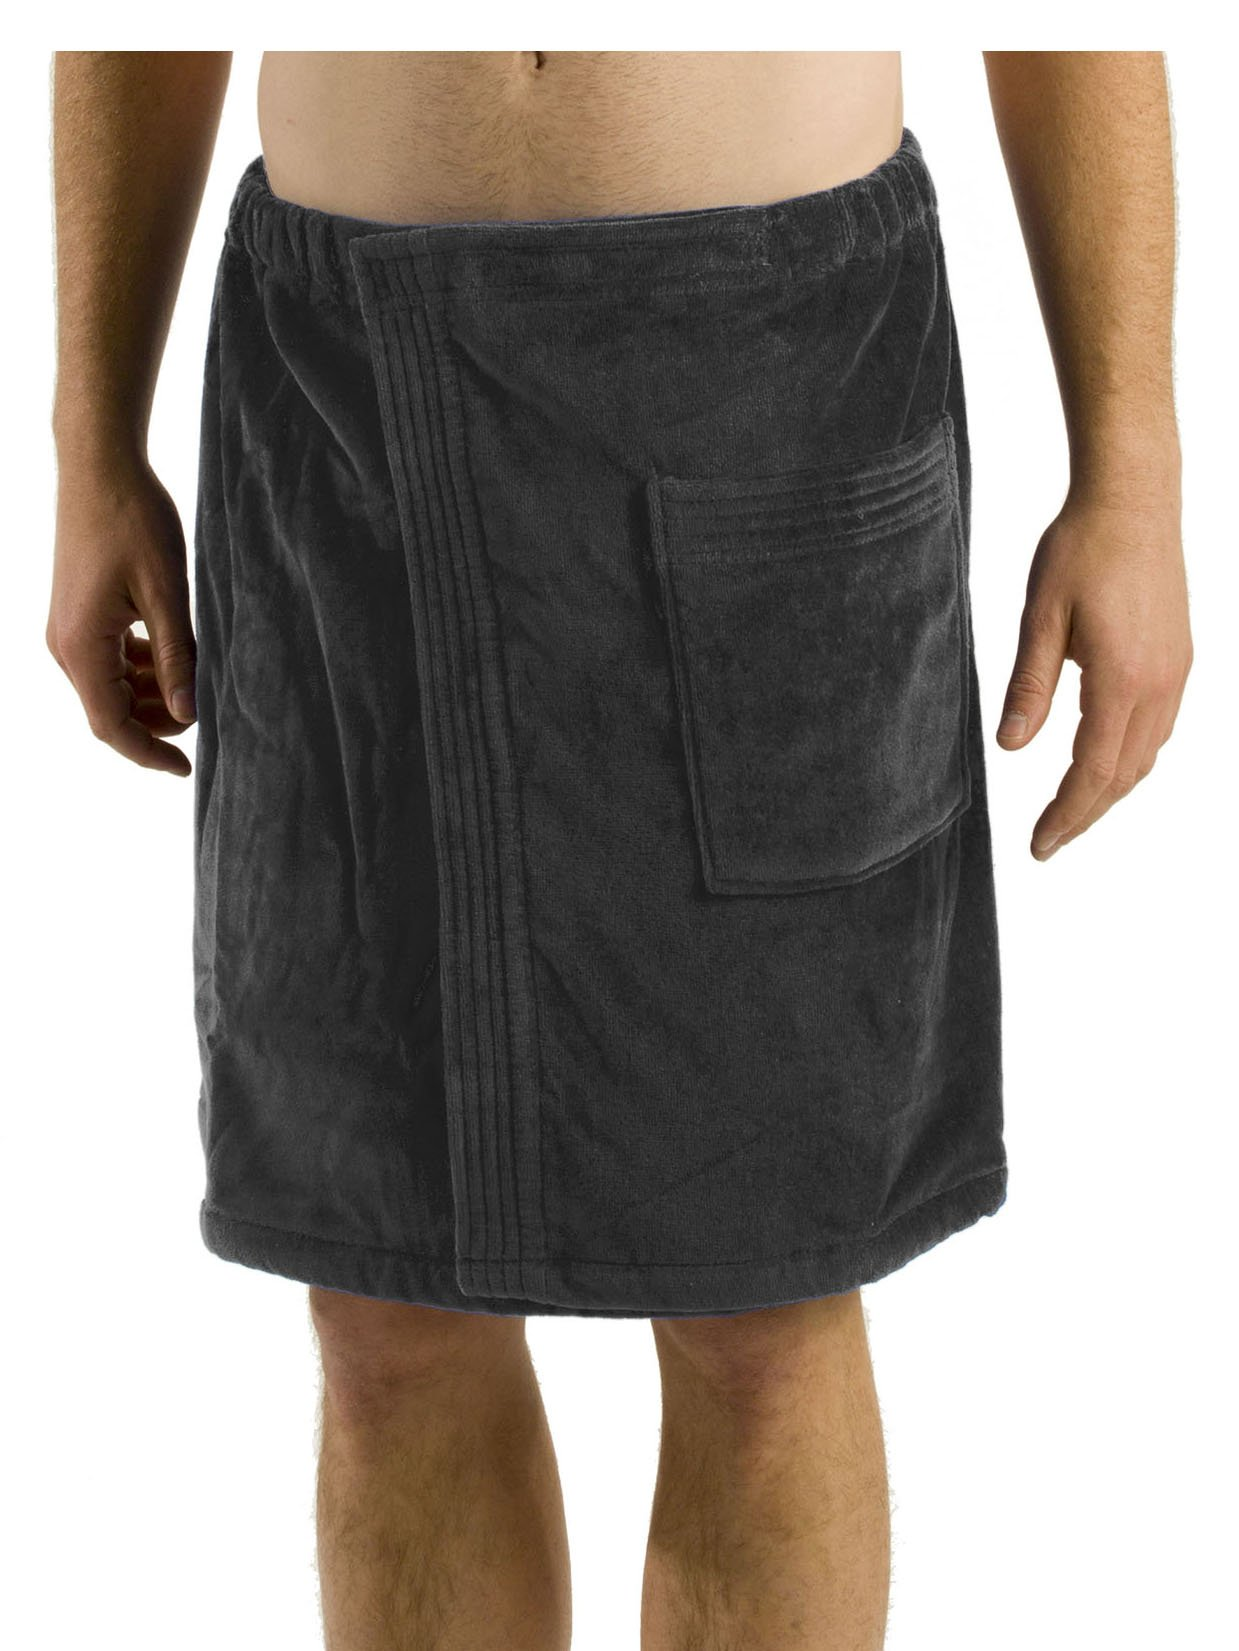 robesale Bamboo Cotton Mens Spa Wrap, Charcoal, One Size